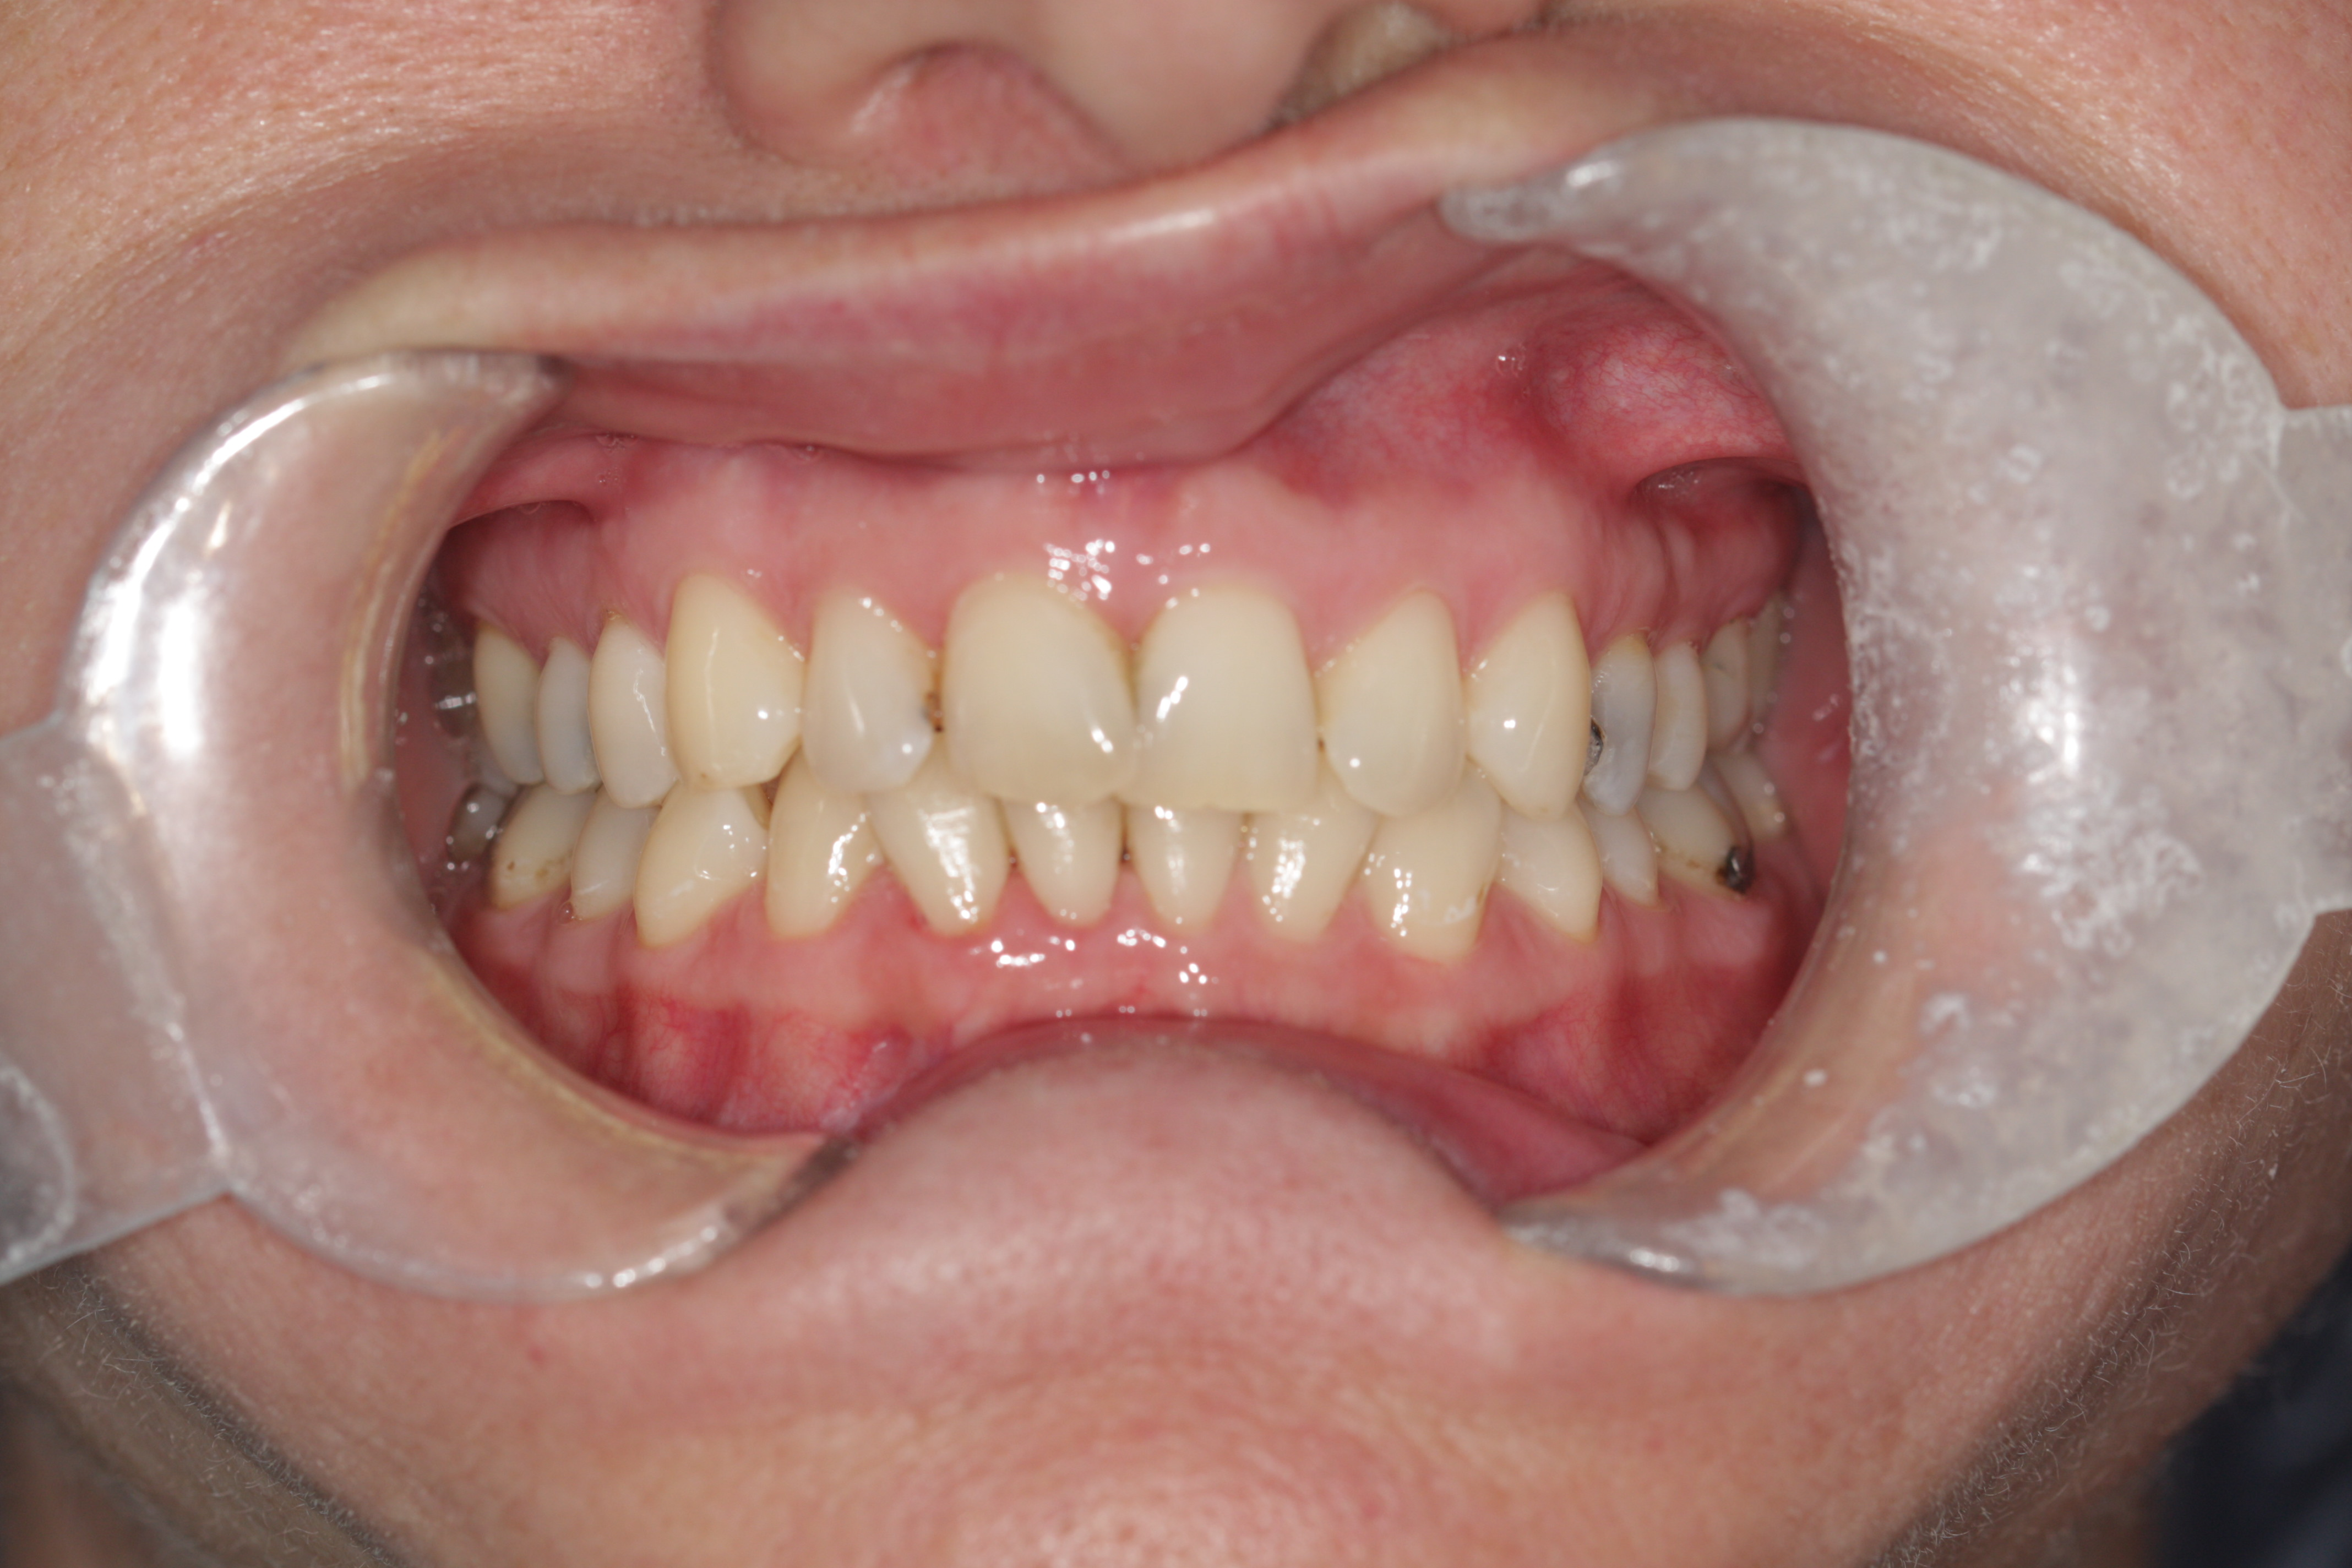 A photo of teeth during an orthodontic treatment.